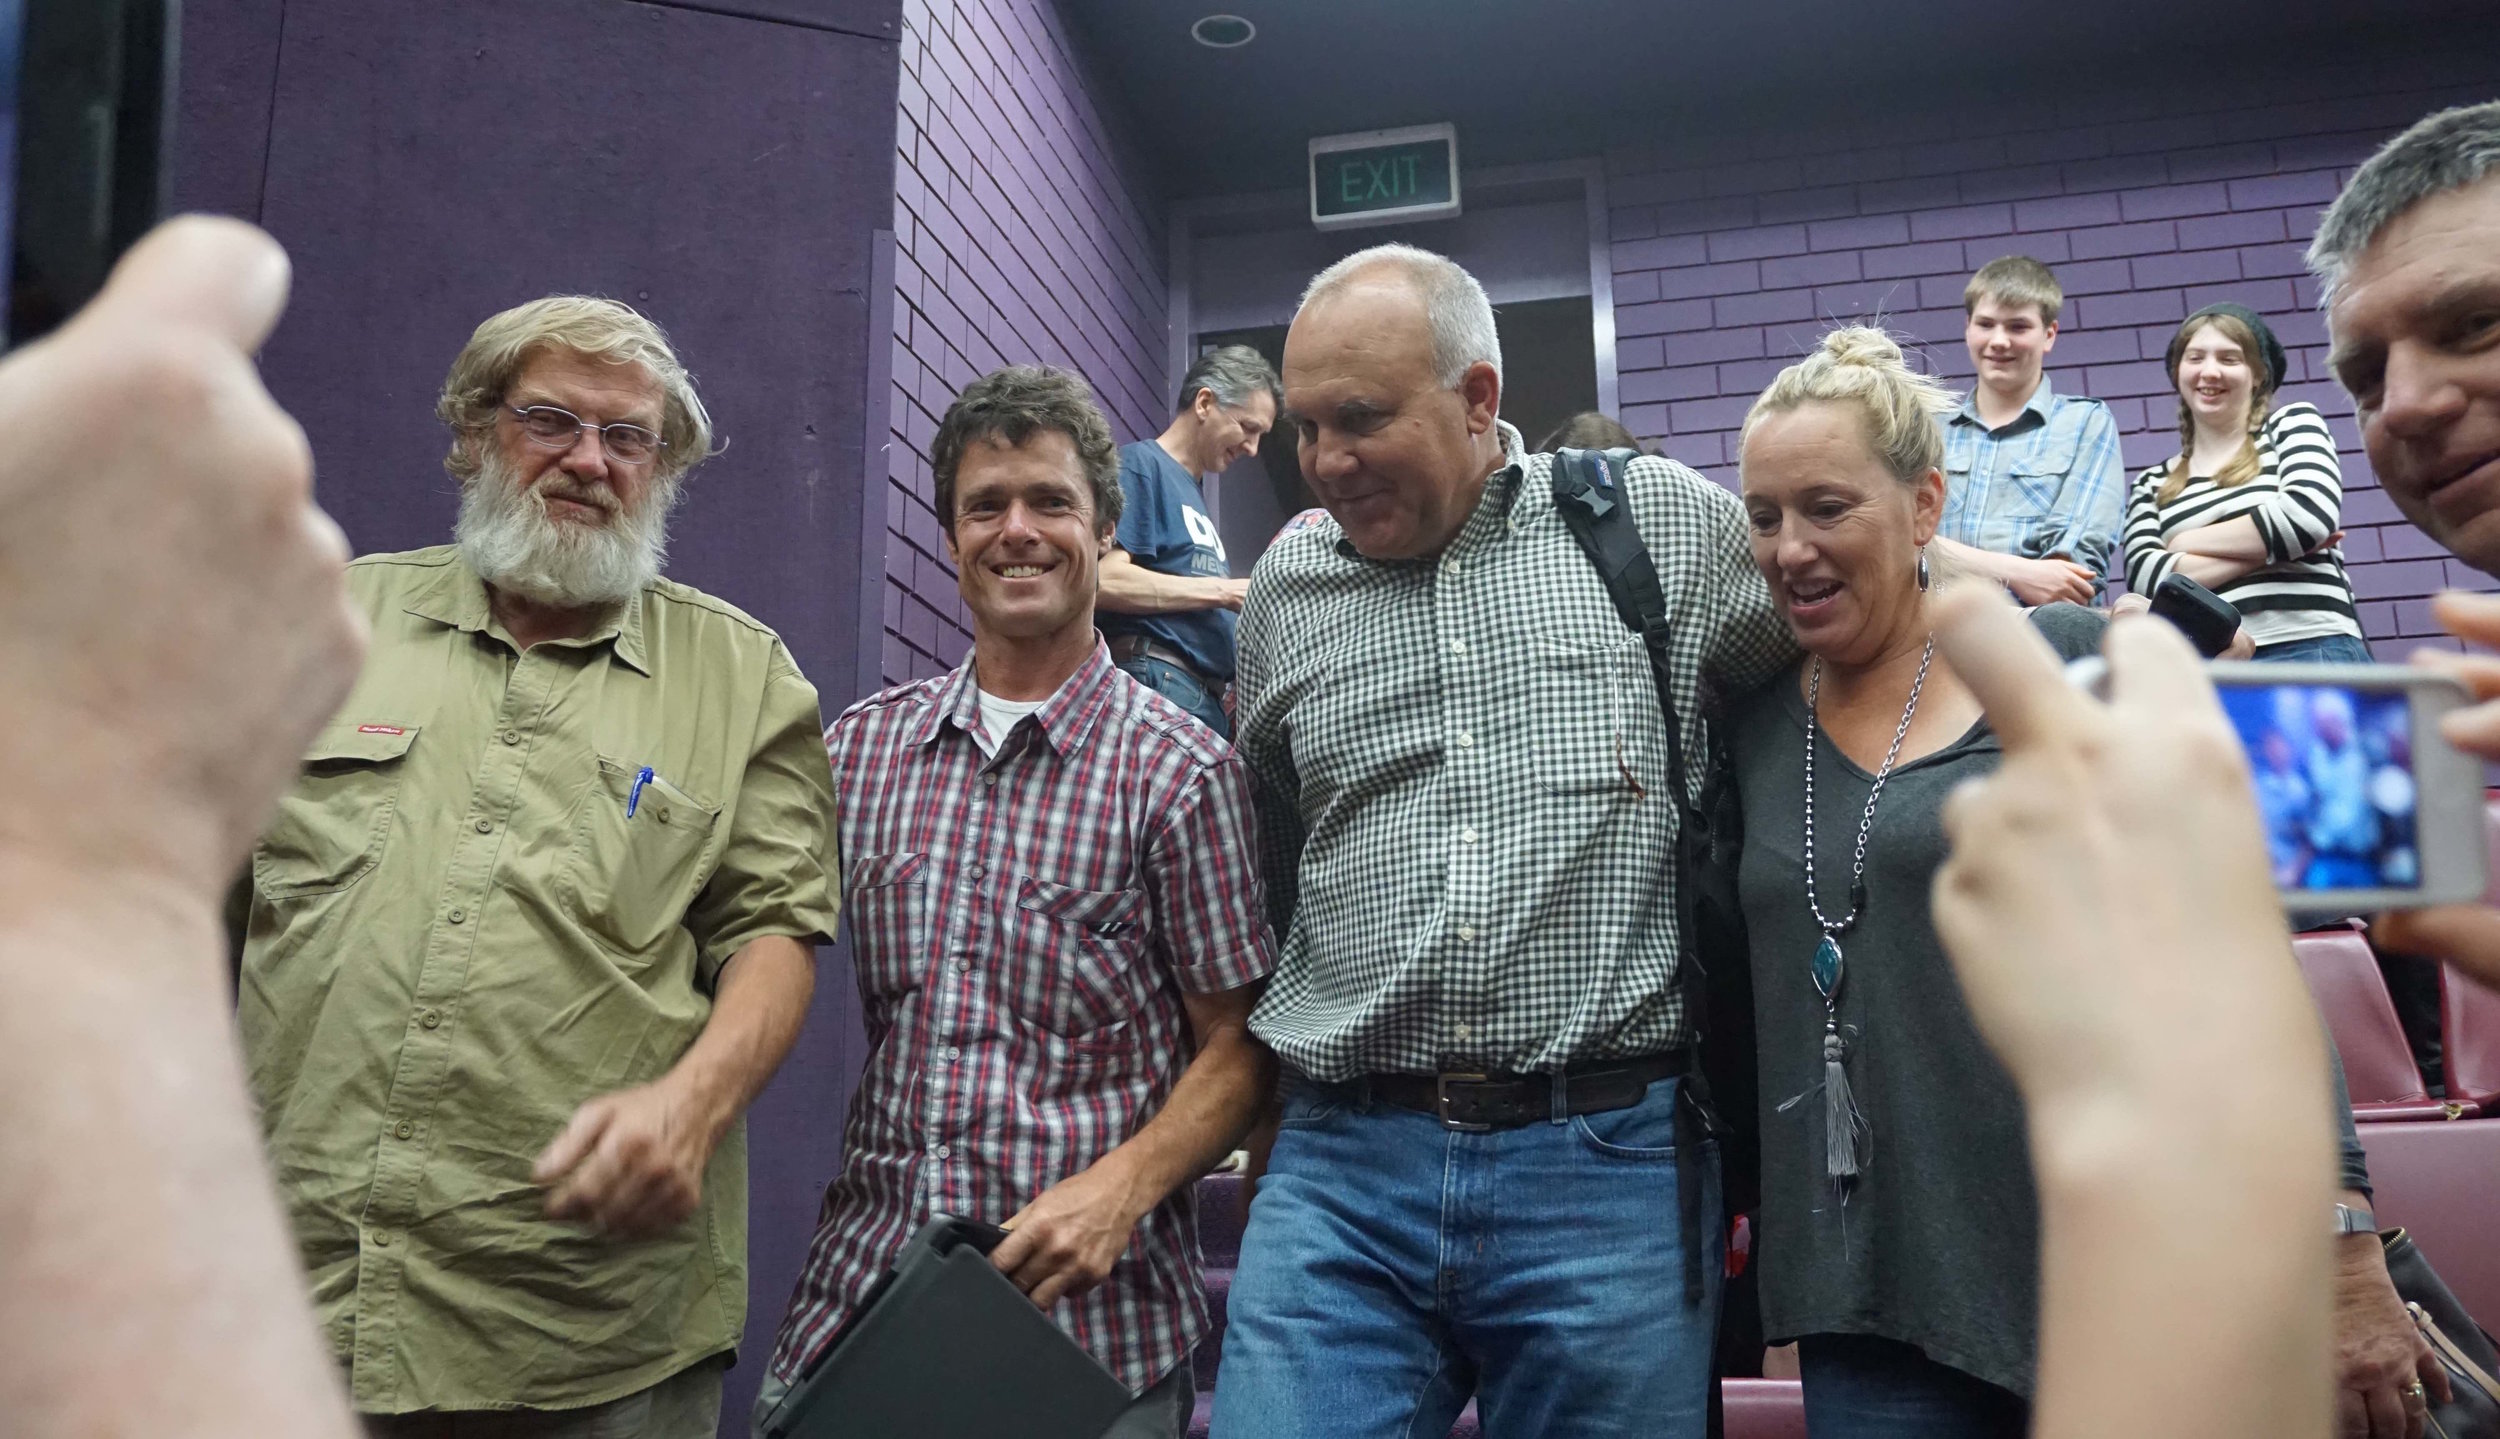 Swampy, Mark & Blaine McAfee pose for photos with raw milk supporters